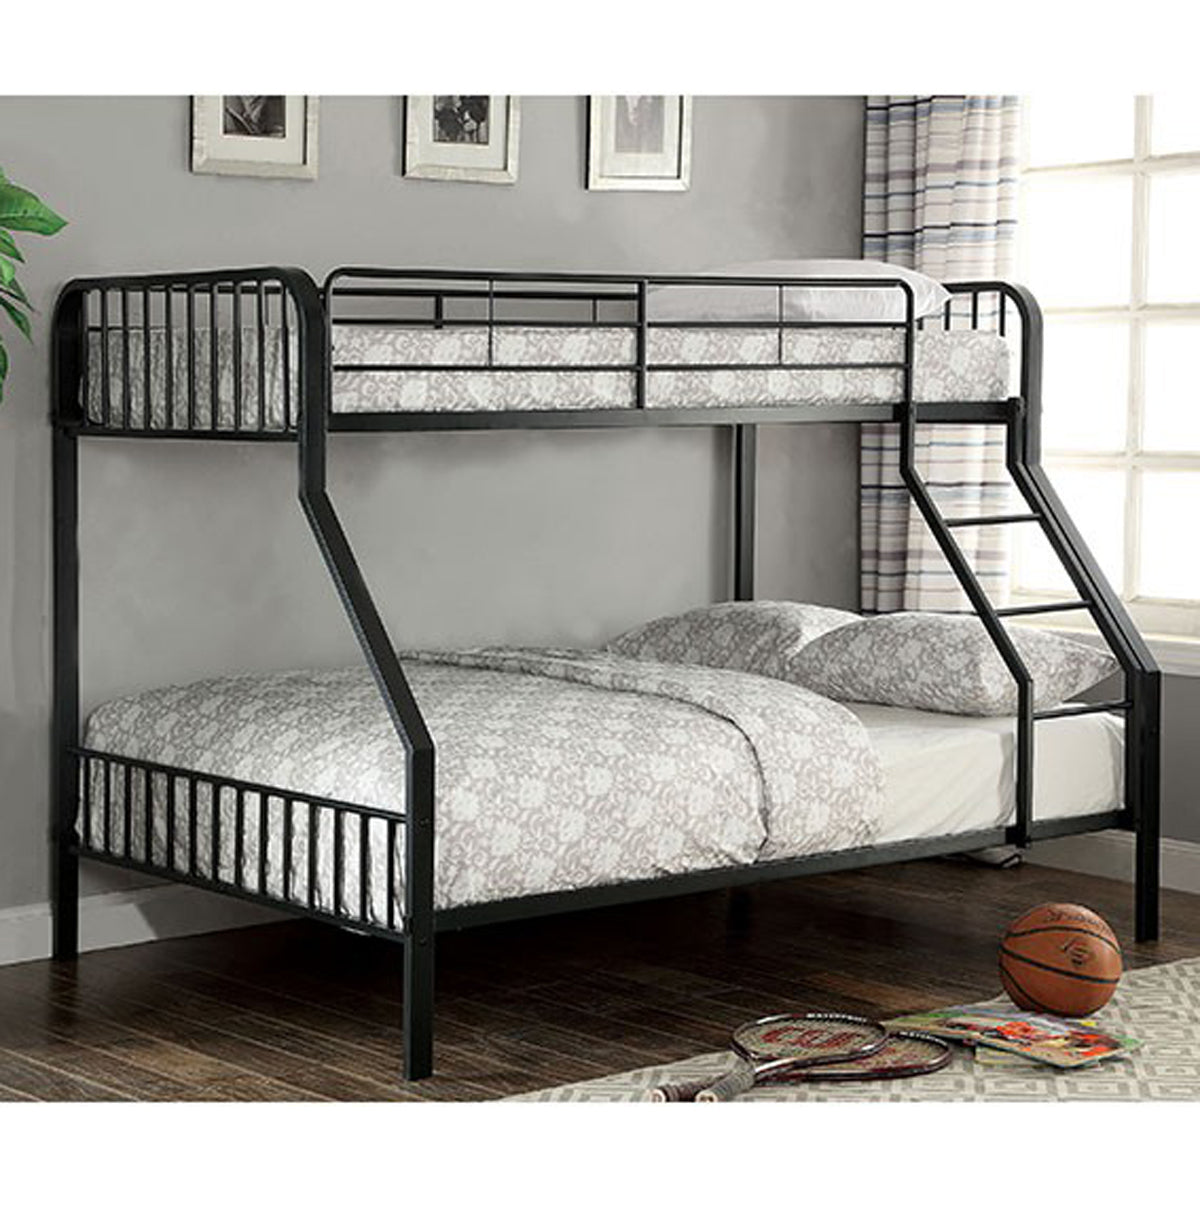 Clement CM-BK928TF Contemporary Black Metal Twin over Full Bunk Bed